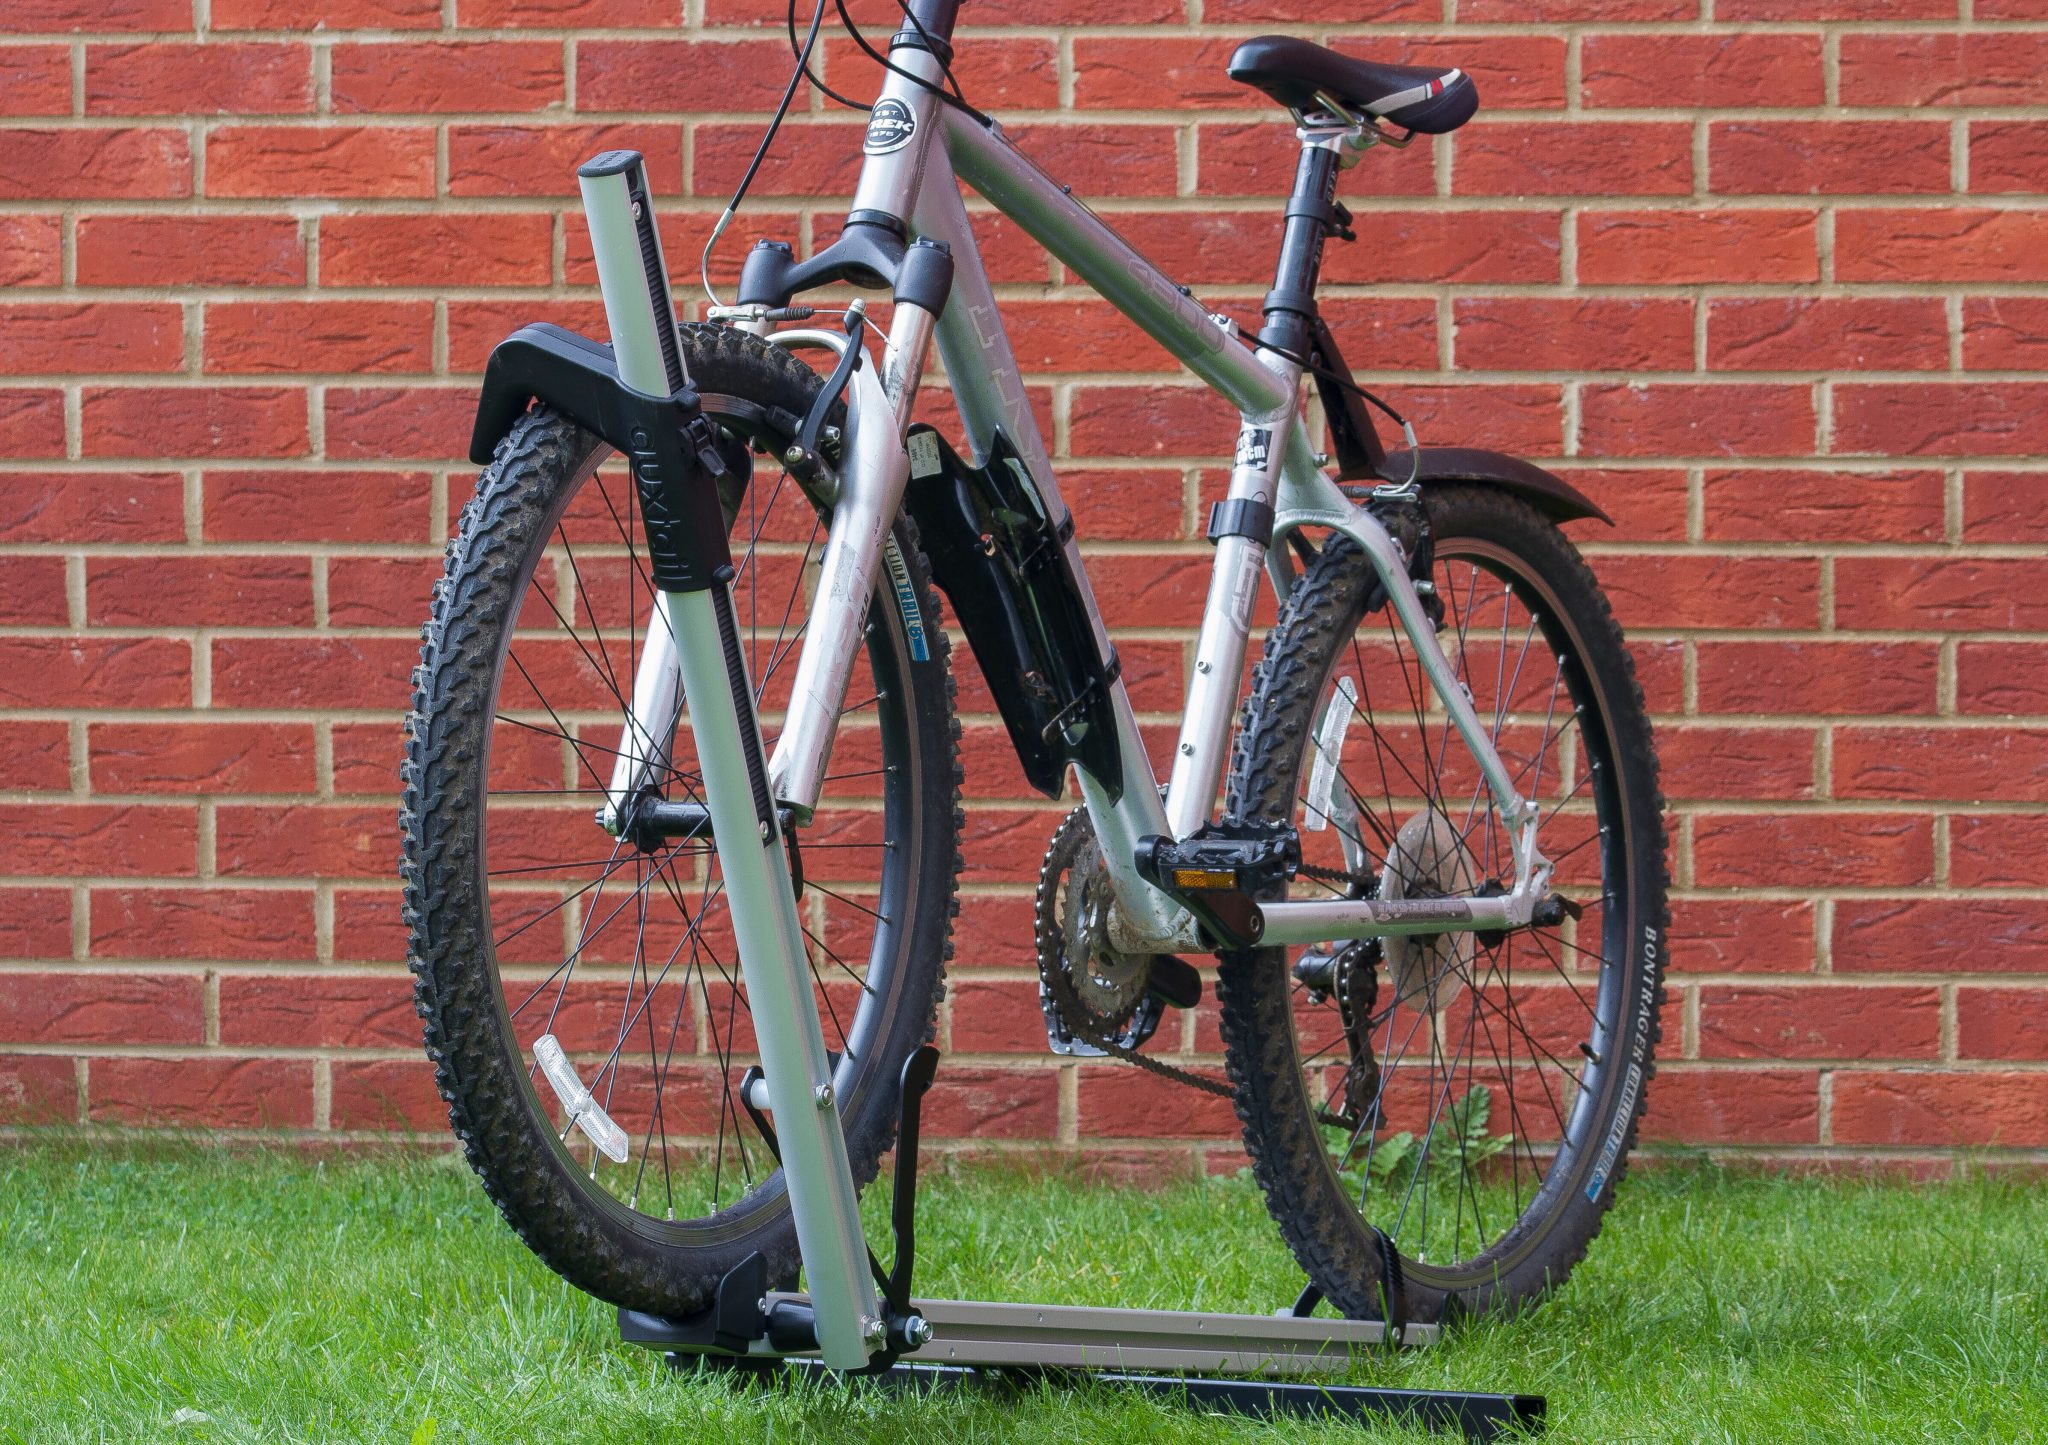 Carbon Frames And Clamp Type Bike Carriers Definitely A